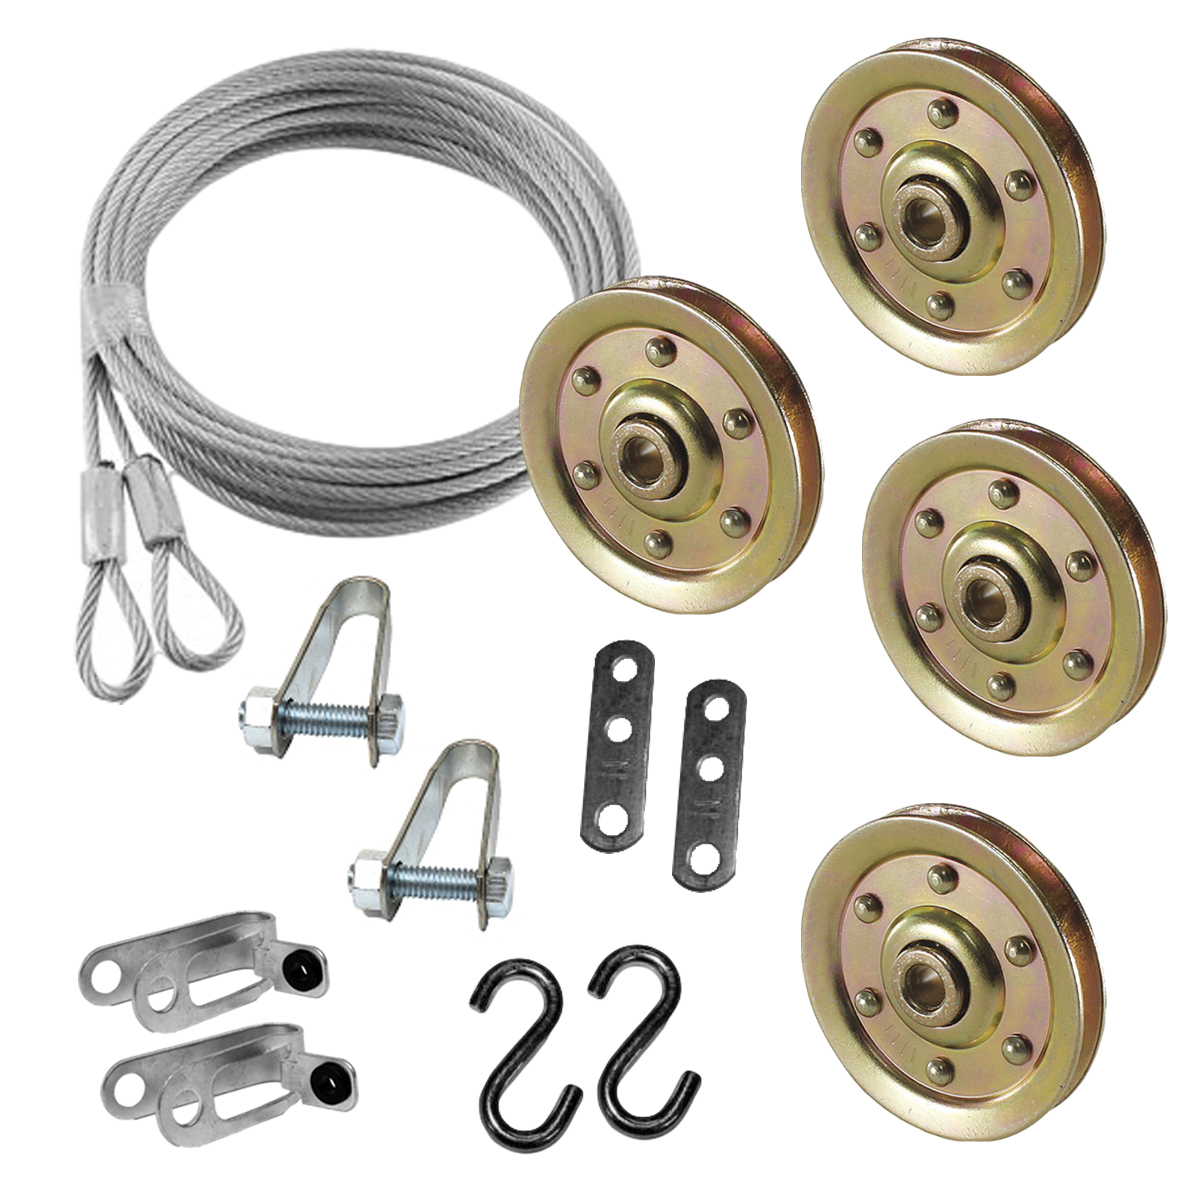 Garage Door Pulley 3 Inch & Safety Cable Complete Kit